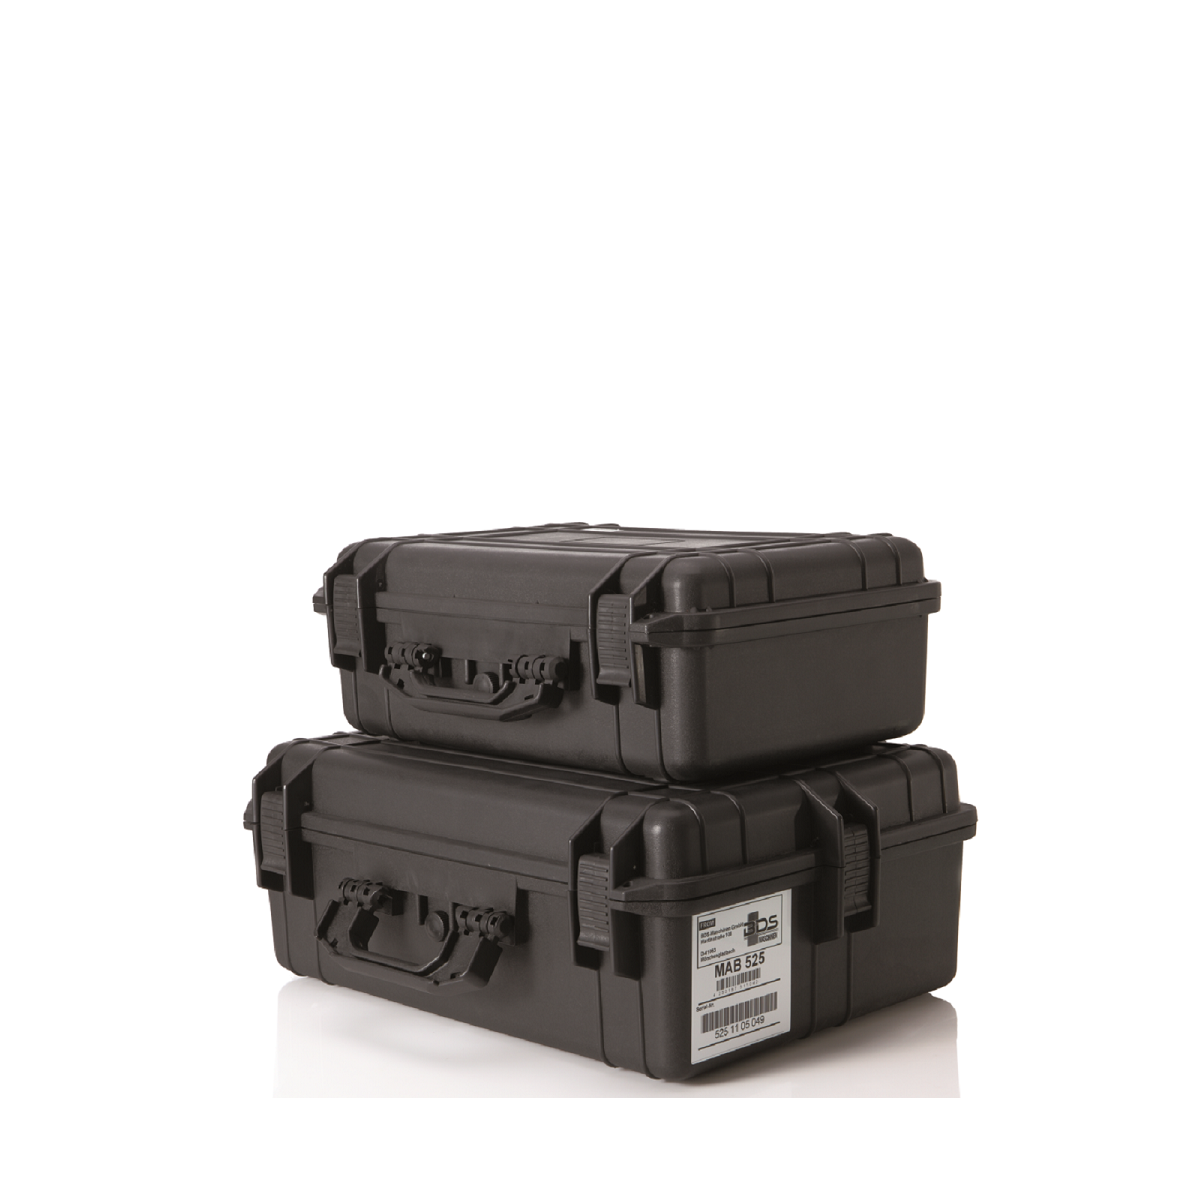 Carry Case for MAB 100, 150, 455, 485 & 525